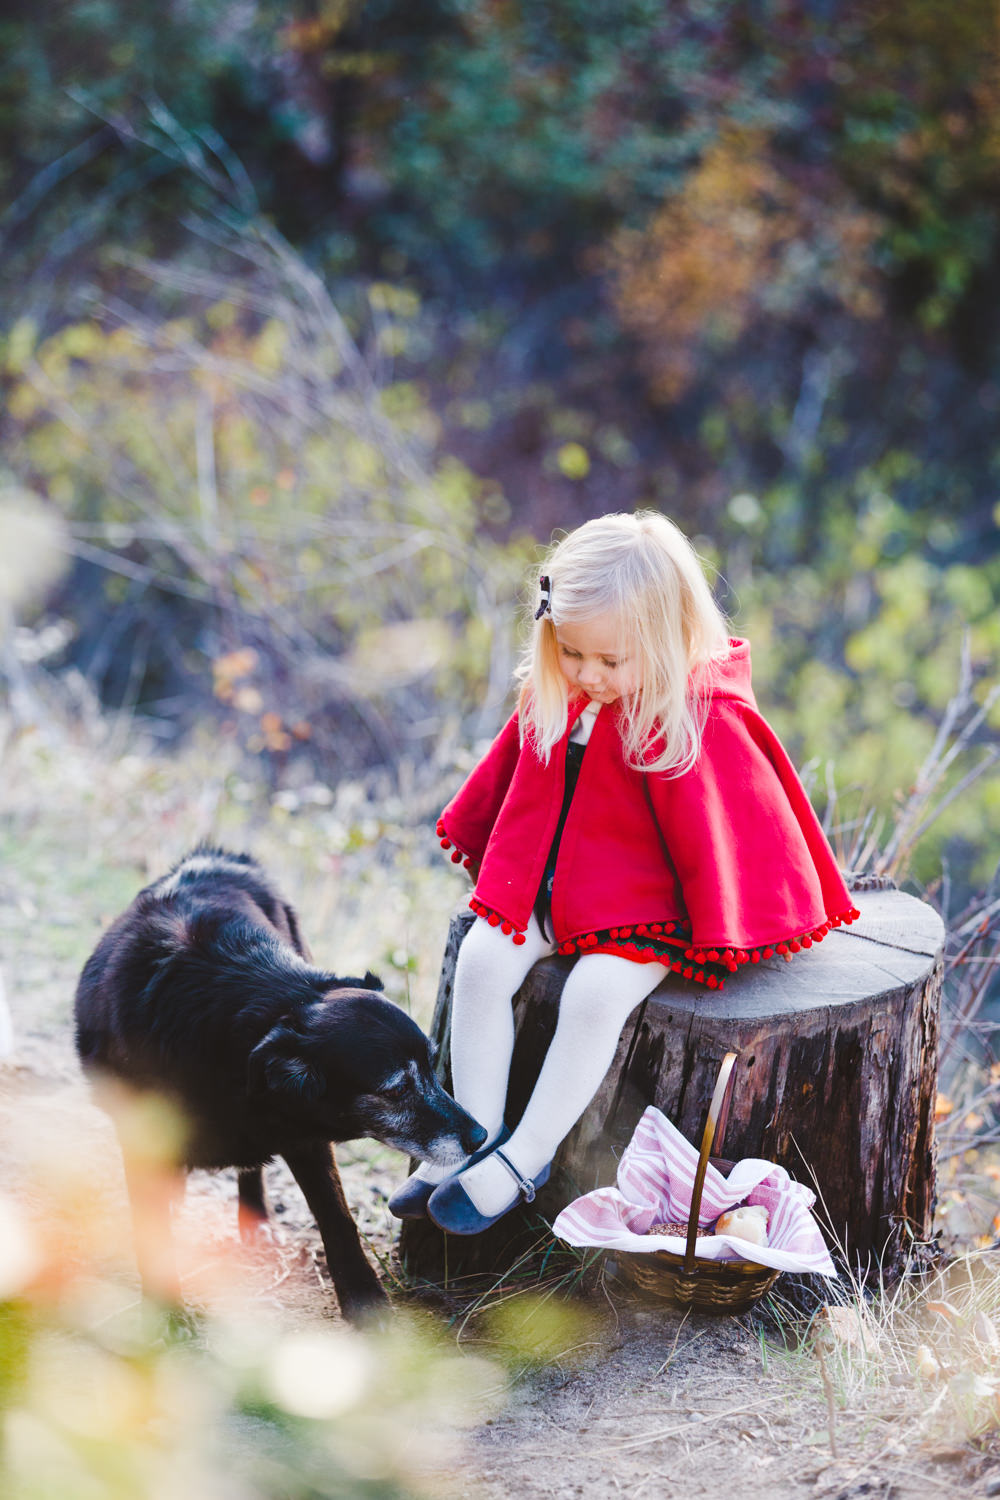 kelowna-halloween-family-photoshoot-little-red-riding-hood-photography-okanagan-halloween-family-photographers-julie-dorge (21 of 27).jpg